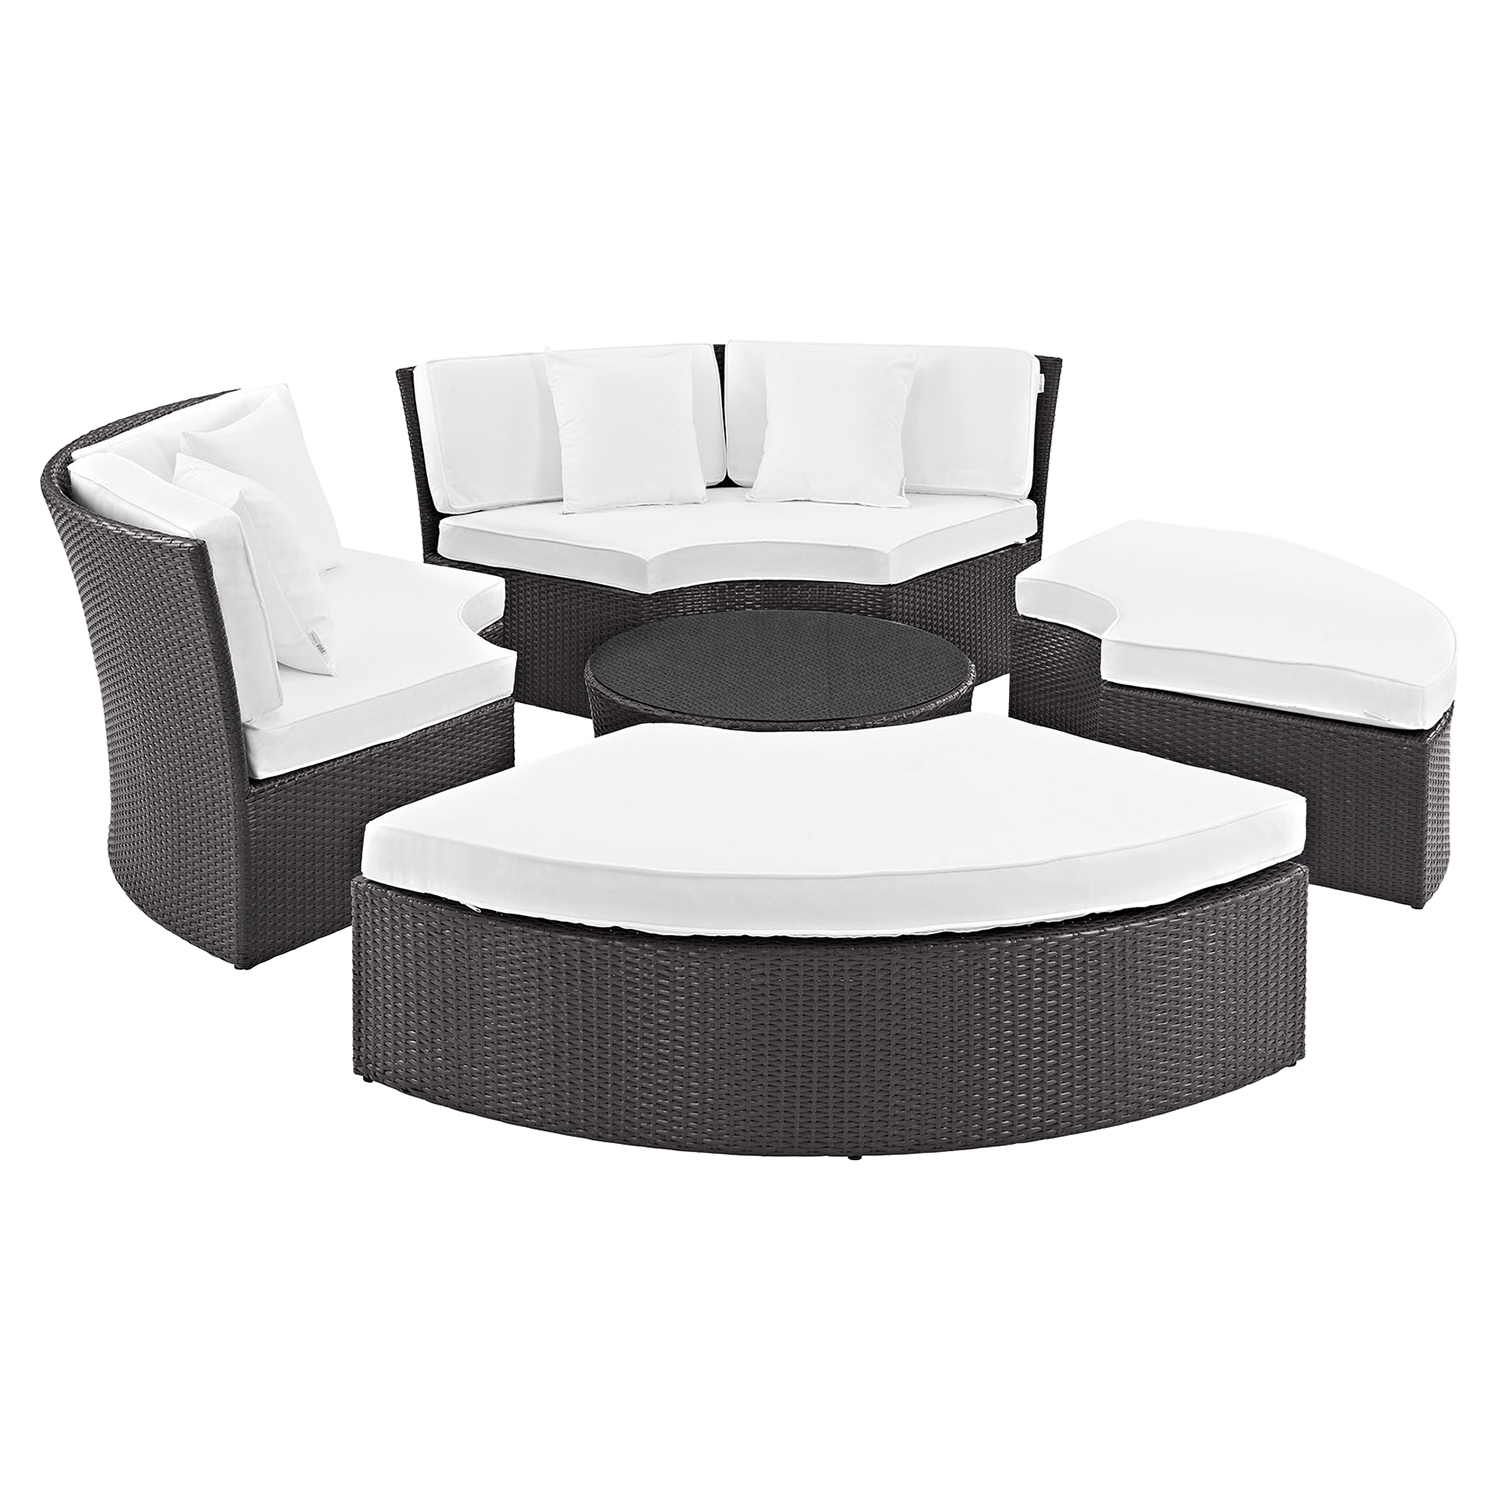 Pursuit Circular Outdoor Patio Daybed Set - EEI-956-EXP-SET